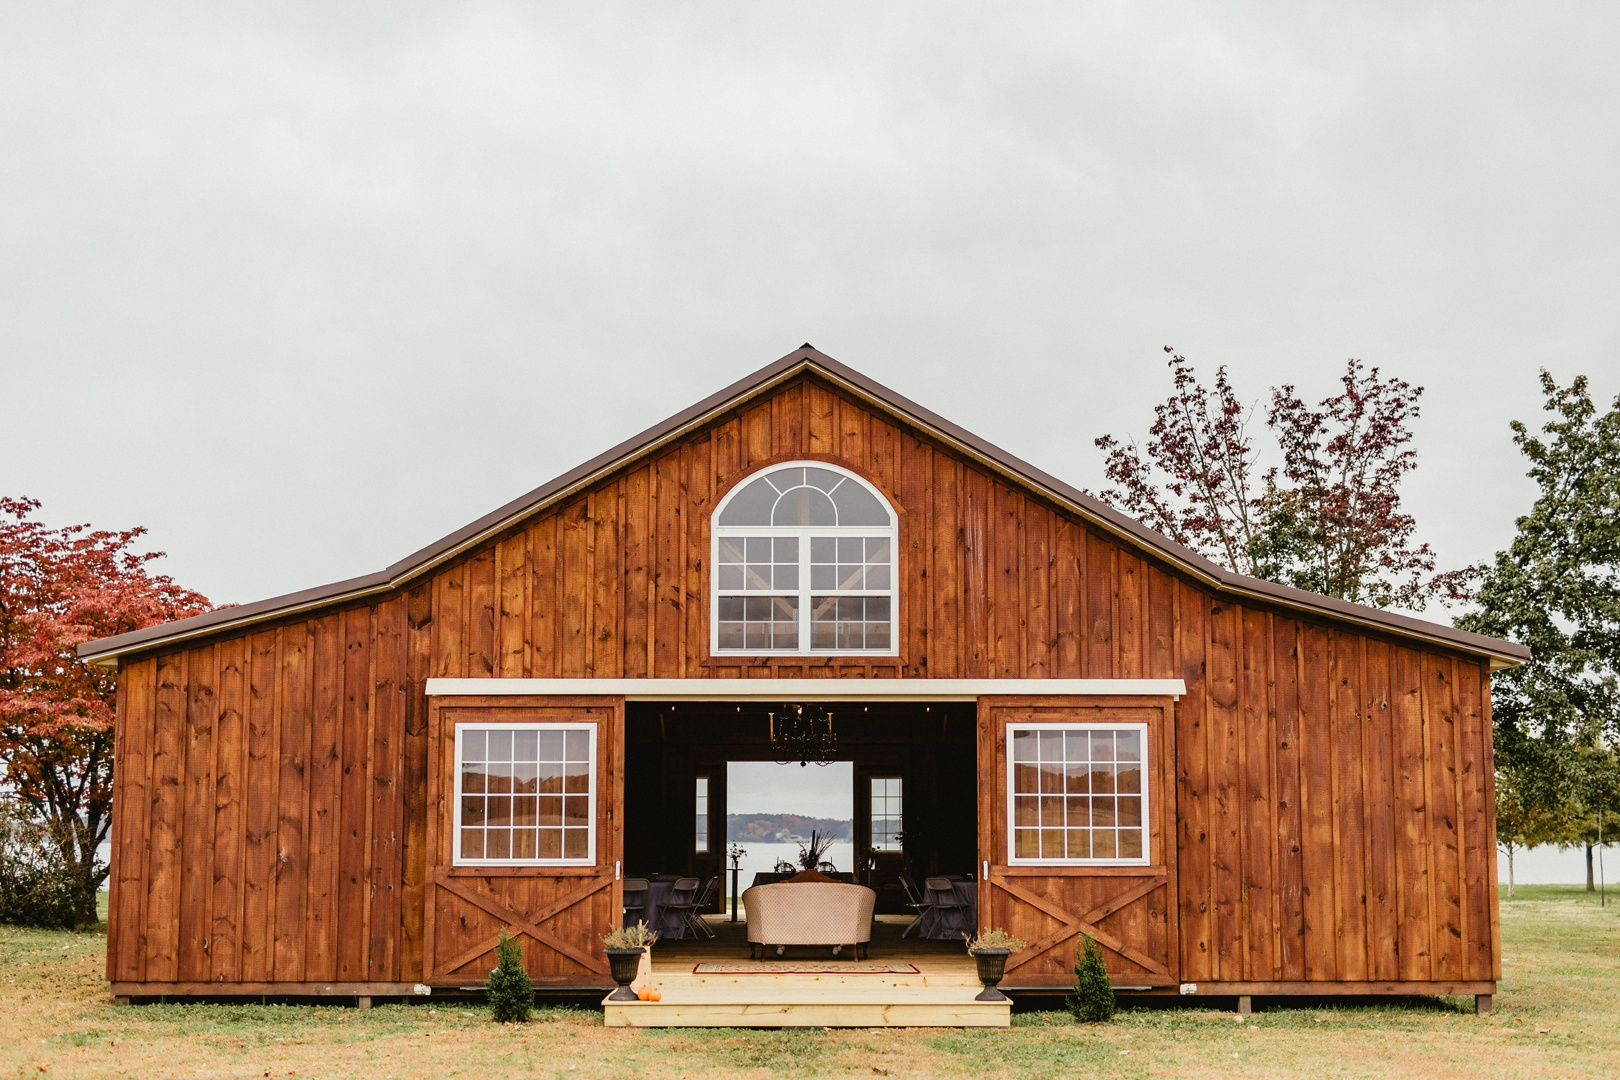 The exterior of the reception barn is a rusty, vibrant shade of red and has three large windows facing the farmlands and the Wicomico River.